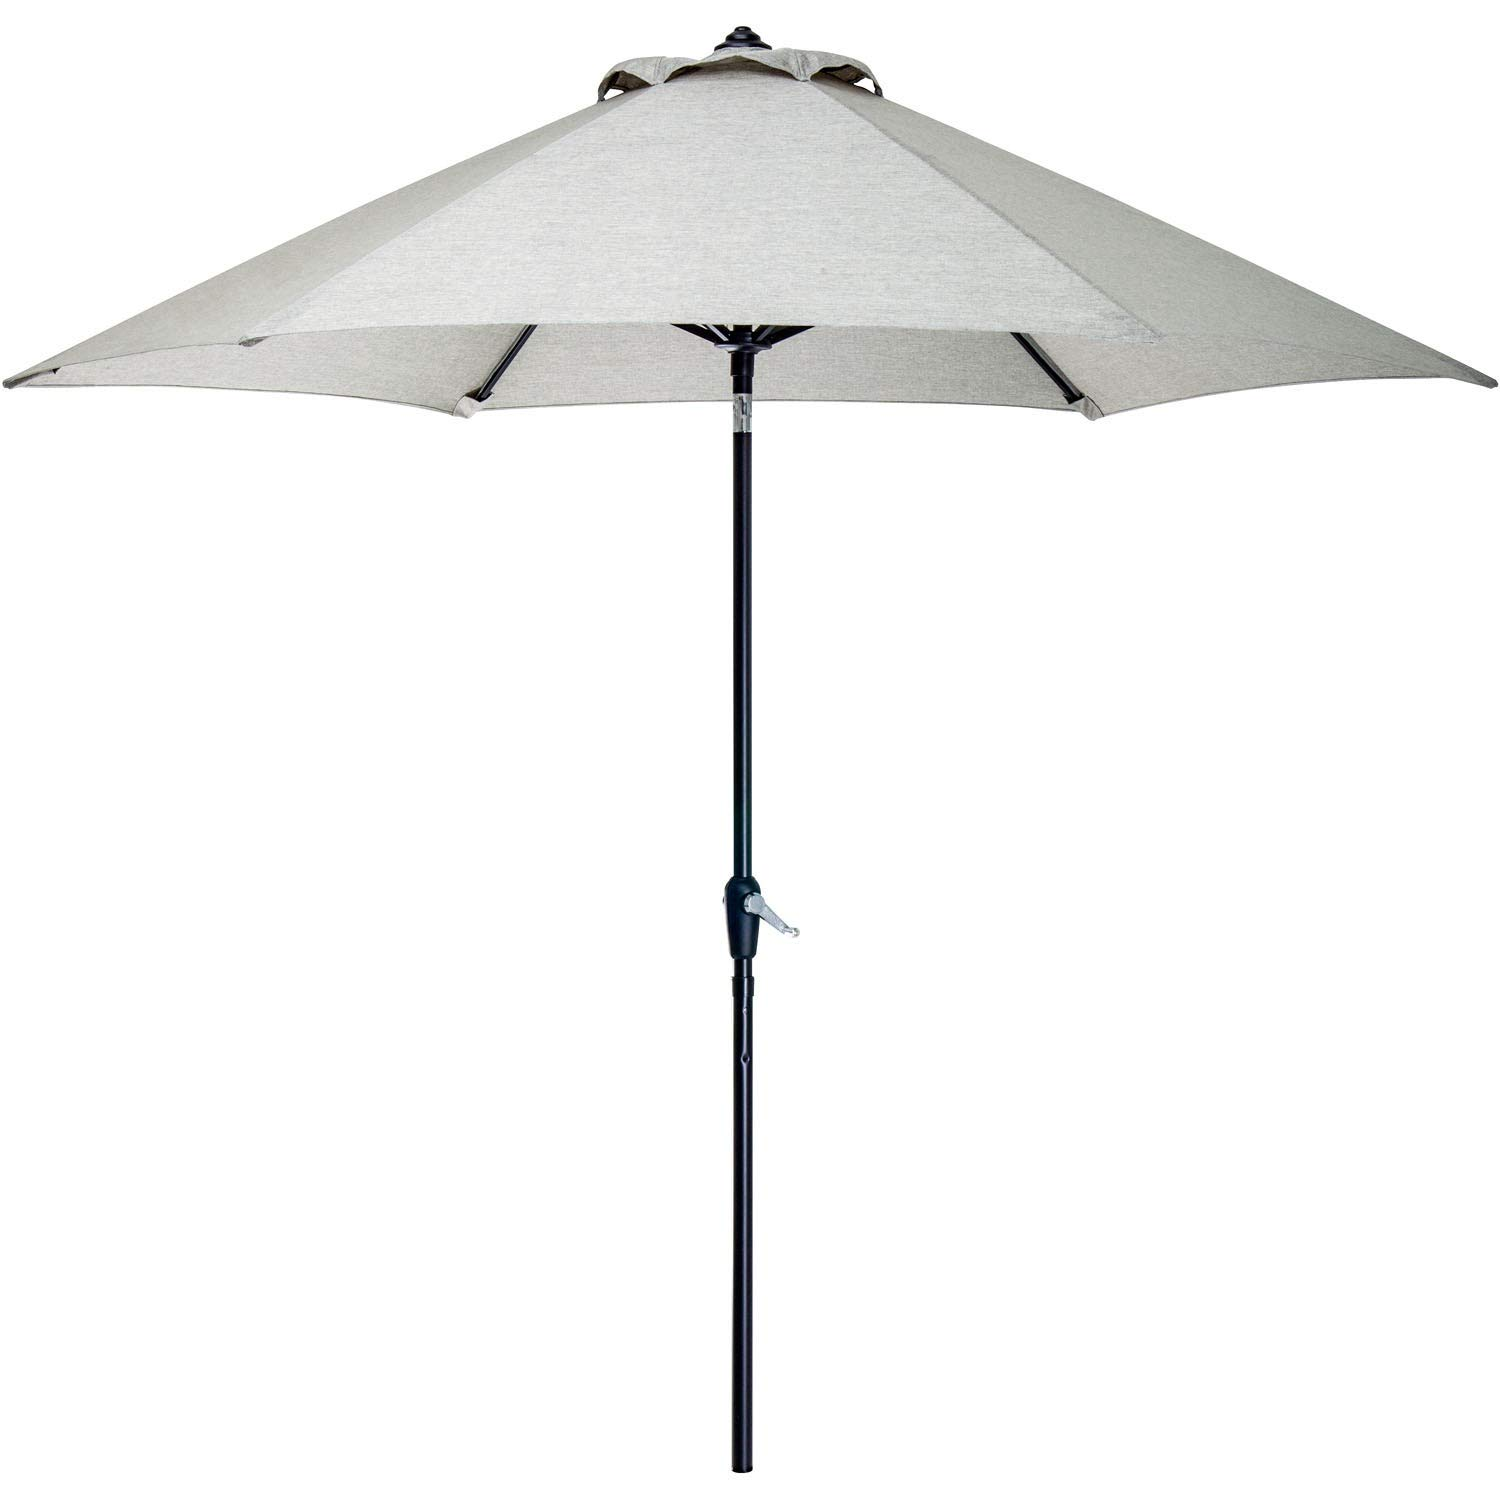 20797ce31601 Amazon.com : Hanover LAVALLETTEUMB Table Umbrella for The Lavallette  Collection Outdoor Dining Set : Garden & Outdoor